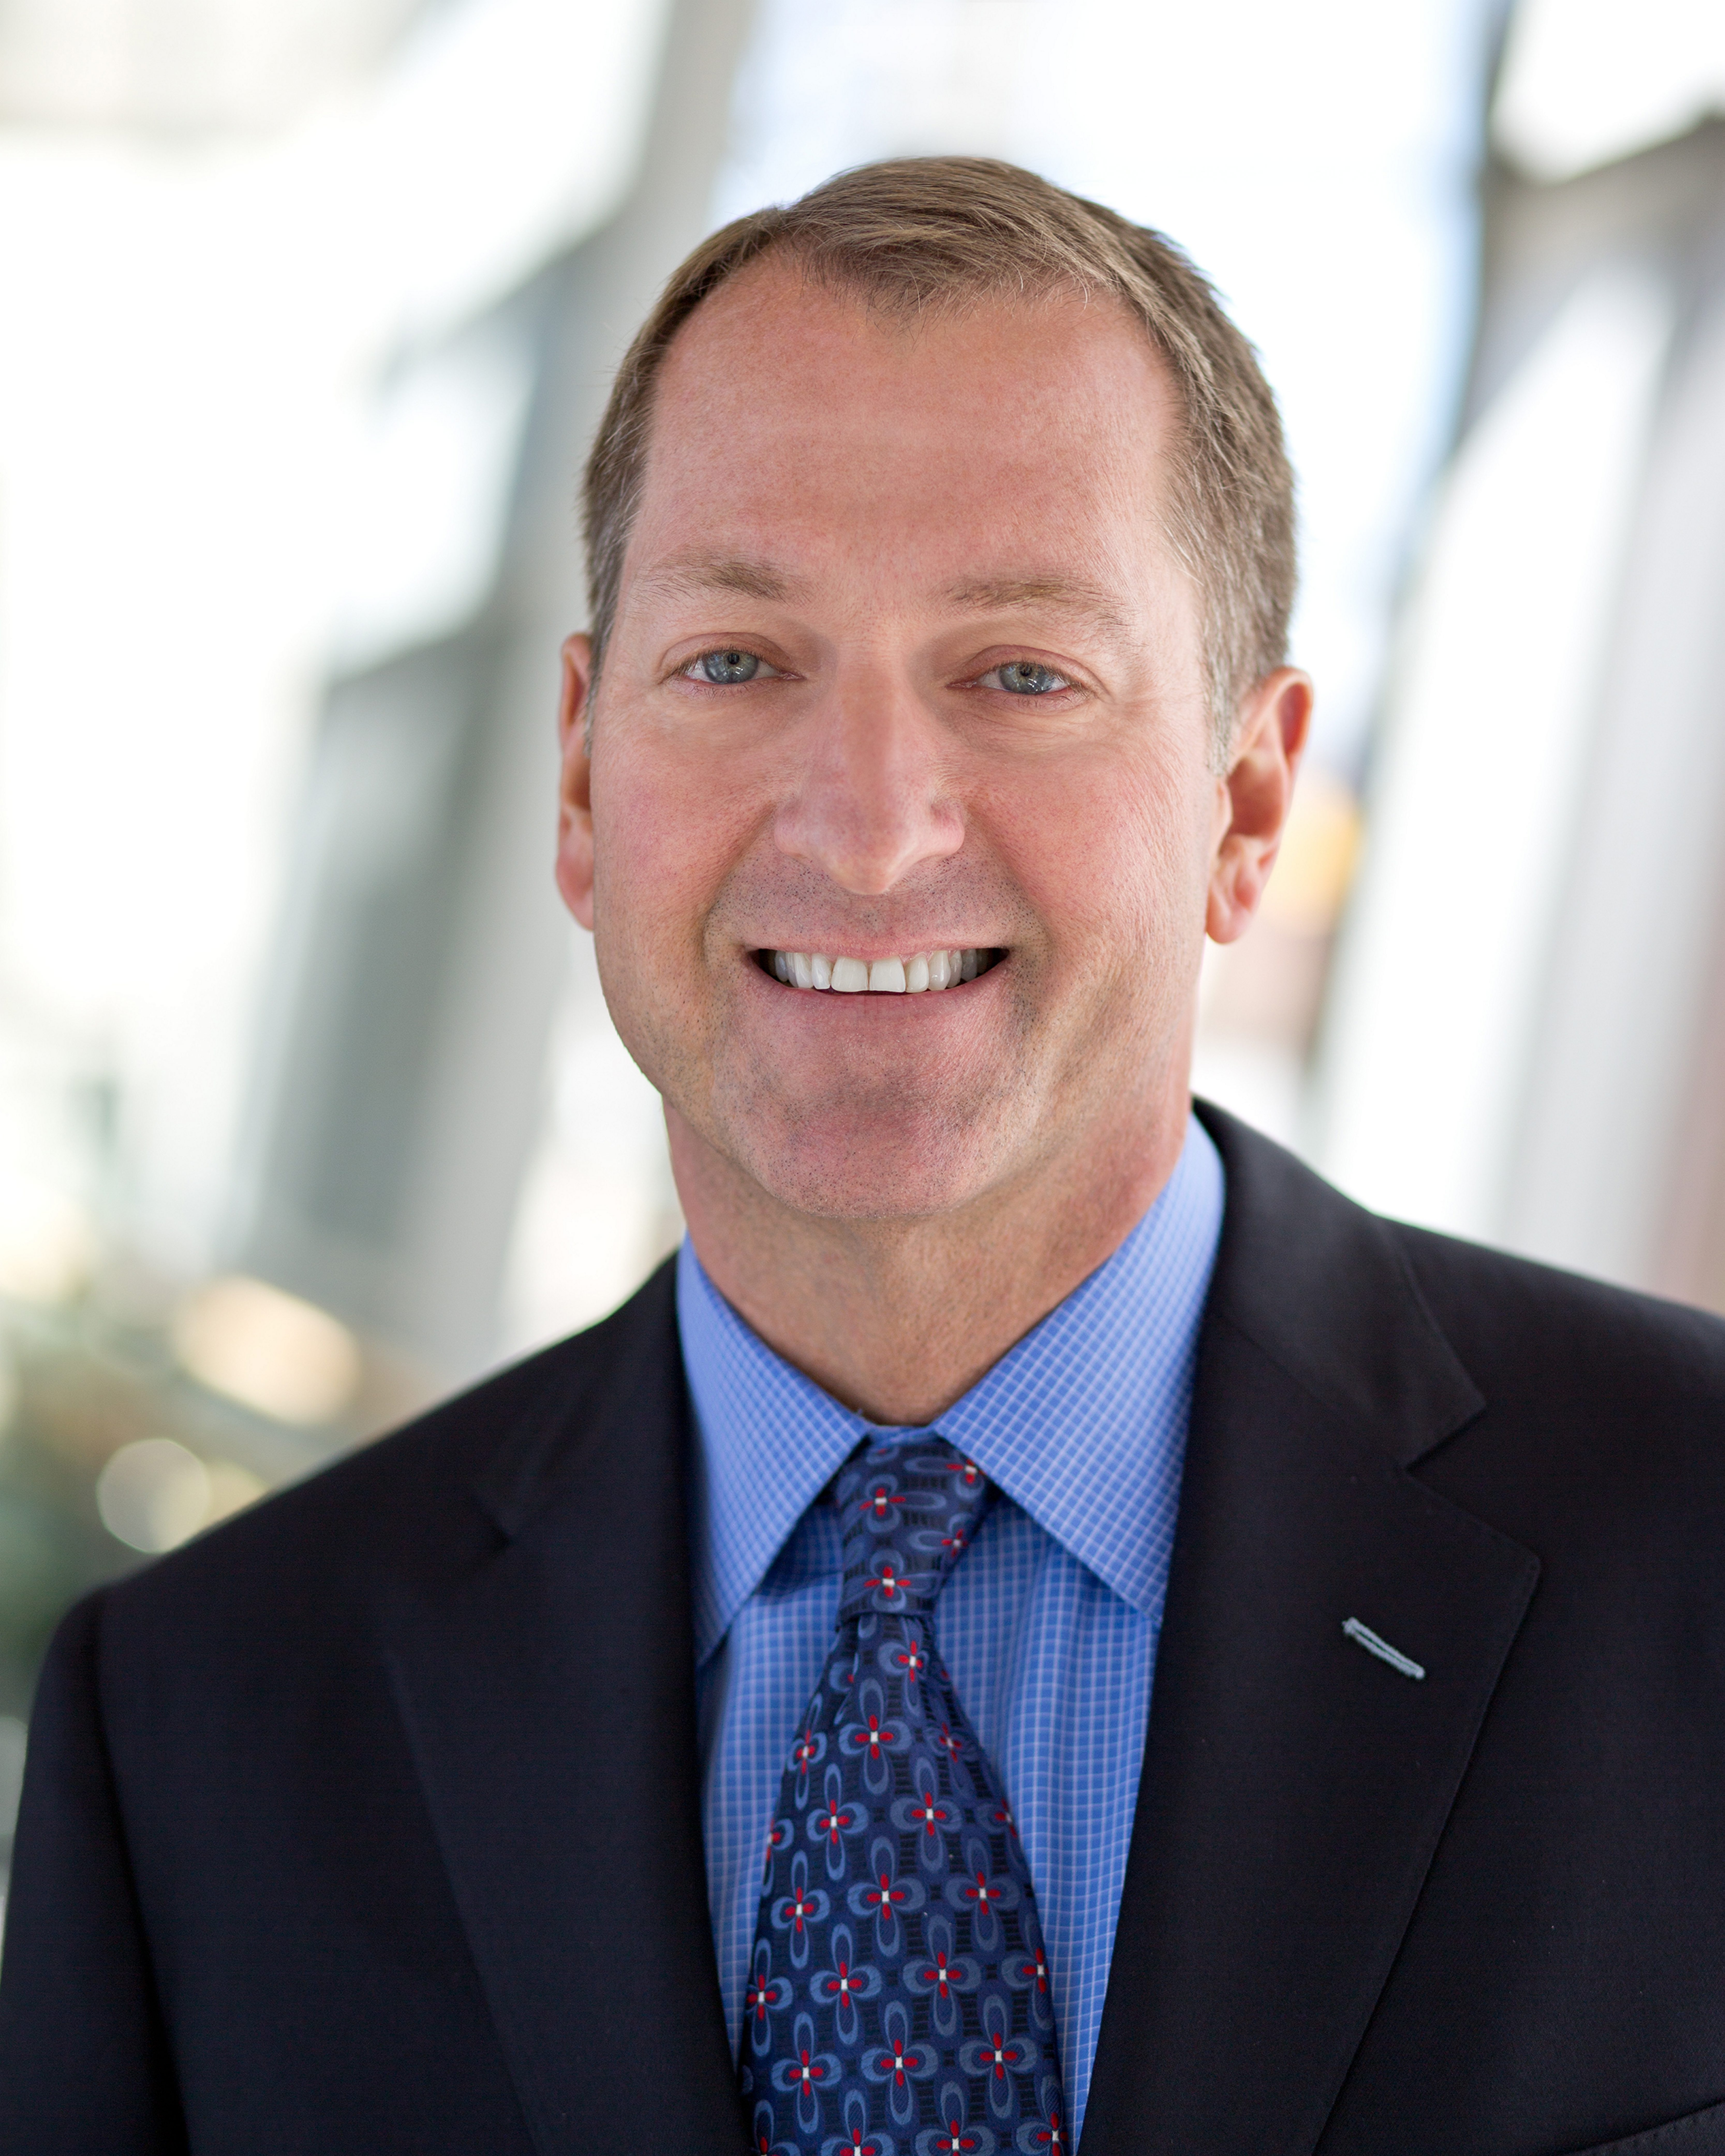 New Era Cap s CEO Koch named executive of the year by UB s school of ... c4c31f91598